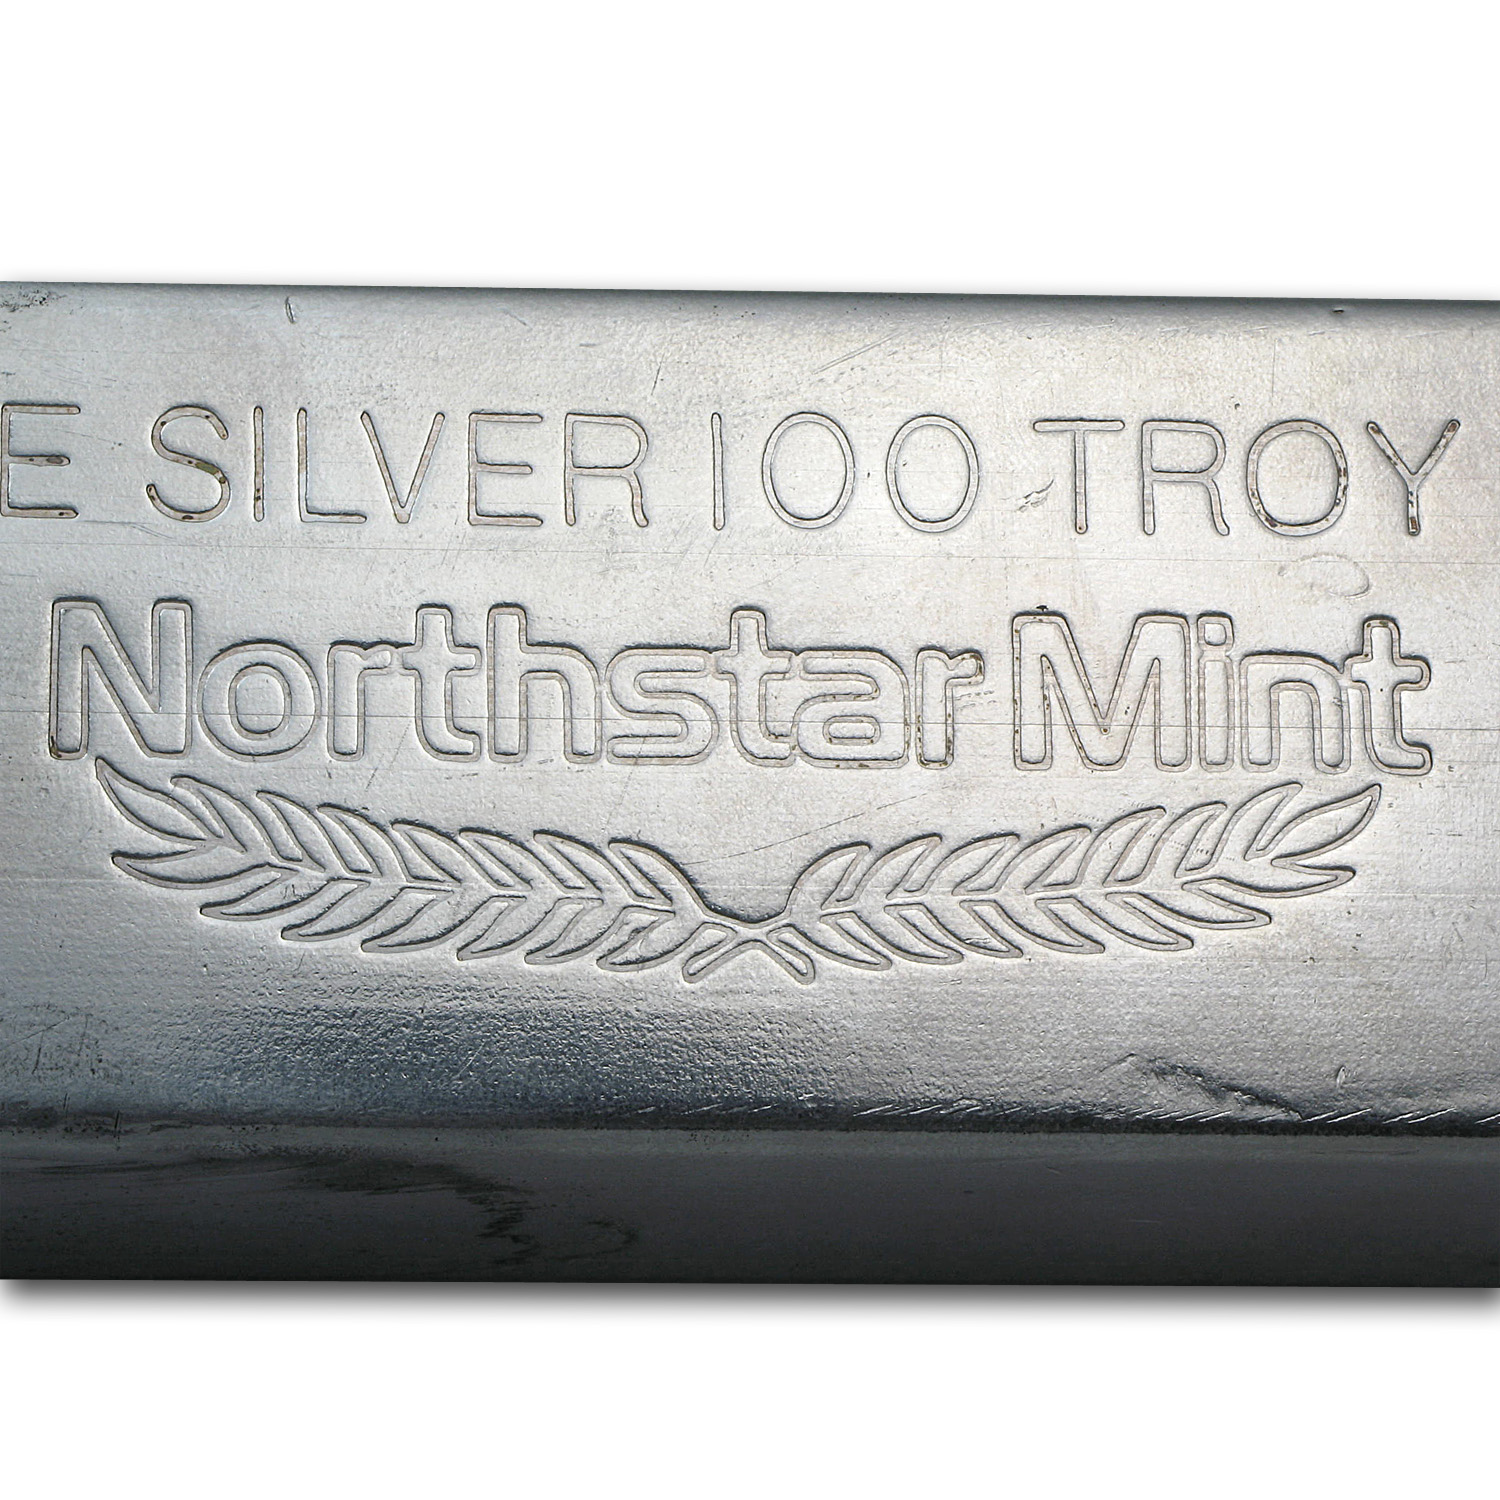 100 oz Silver Bars - Northstar Mint